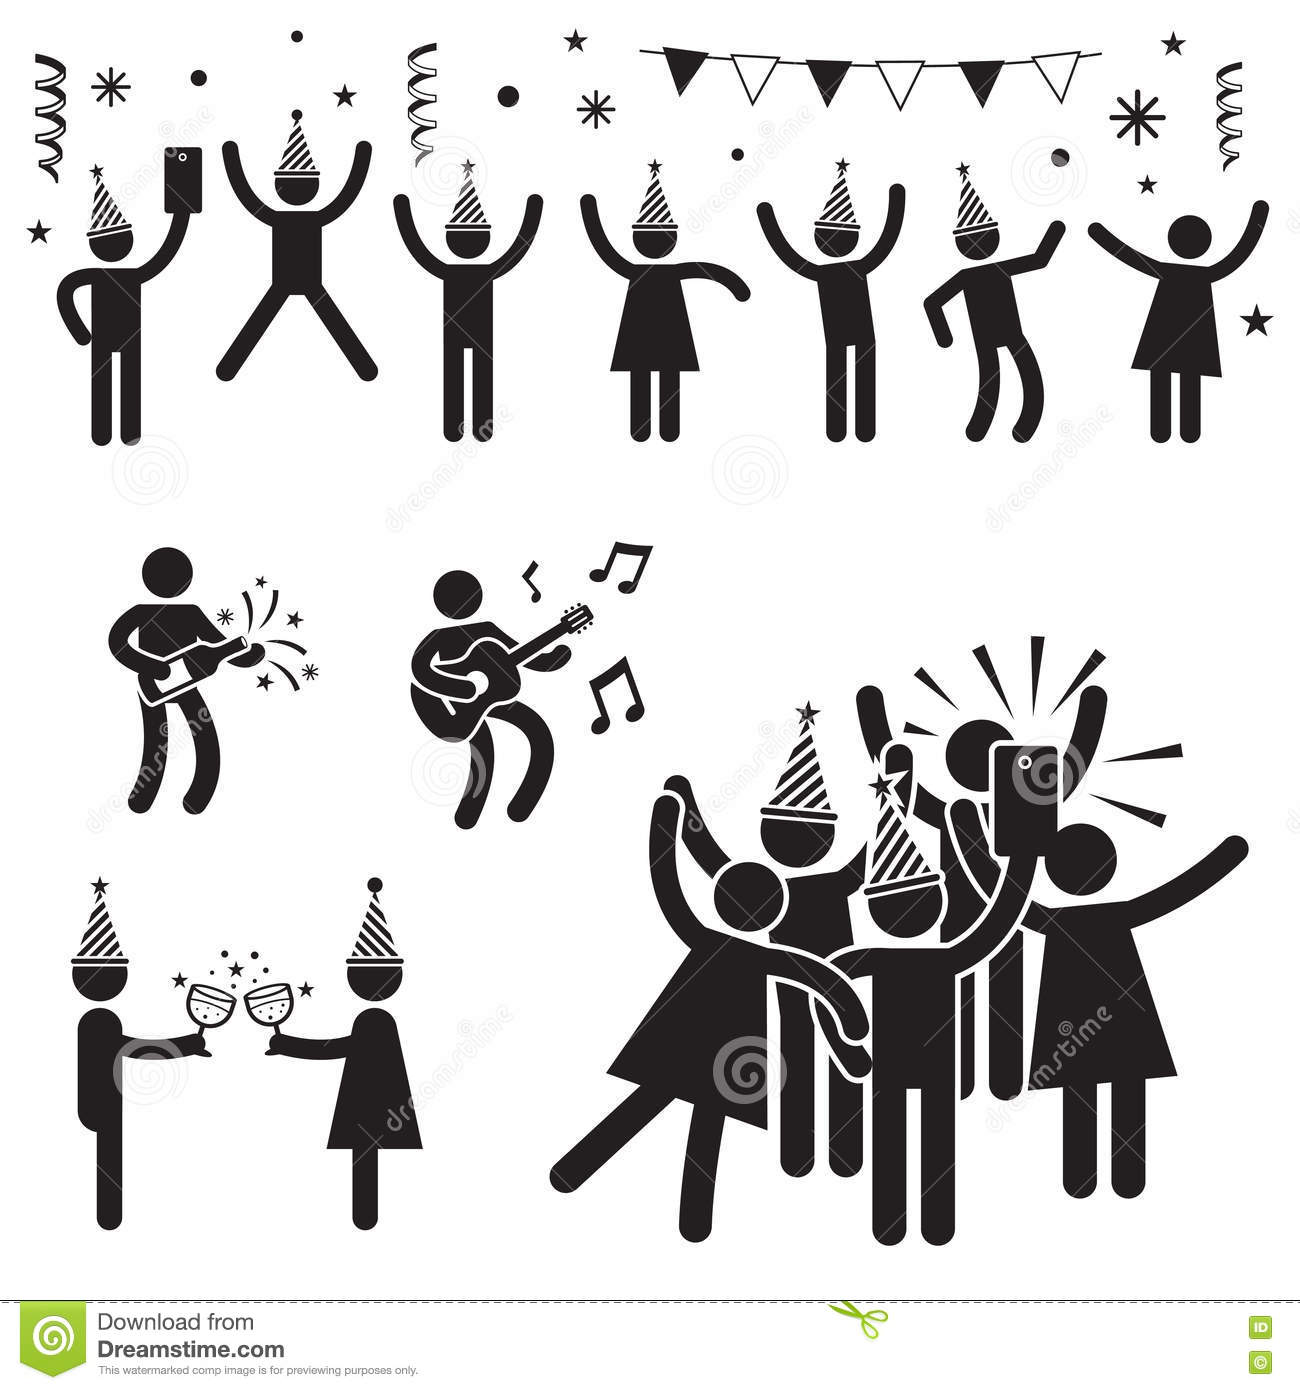 People Party Symbols B Amp W Stock Vector Illustration Of